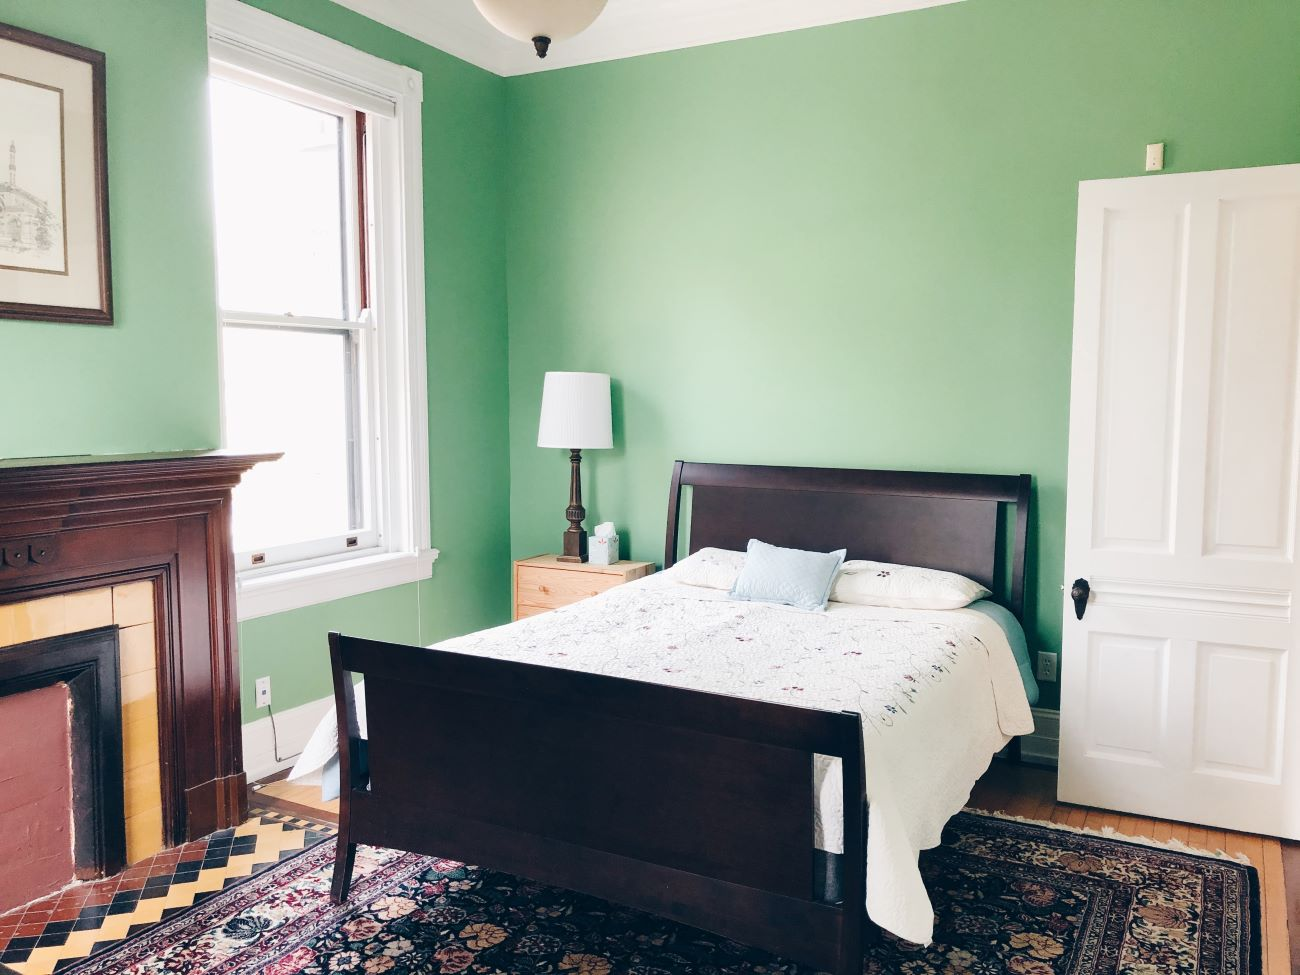 2321 Upland Place, Unit 2 (45206) is a condo in East Walnut Hills that encompasses the entire second floor of a 19th Century home. The two-bed, two-bath unit features over 1,900-square feet of interior livable area that's adorned with stained glass windows, 11-ft ceilings, and maple and Brazilian mahogany floors throughout. / Image courtesy of Linda Manning // Published: 1.12.21